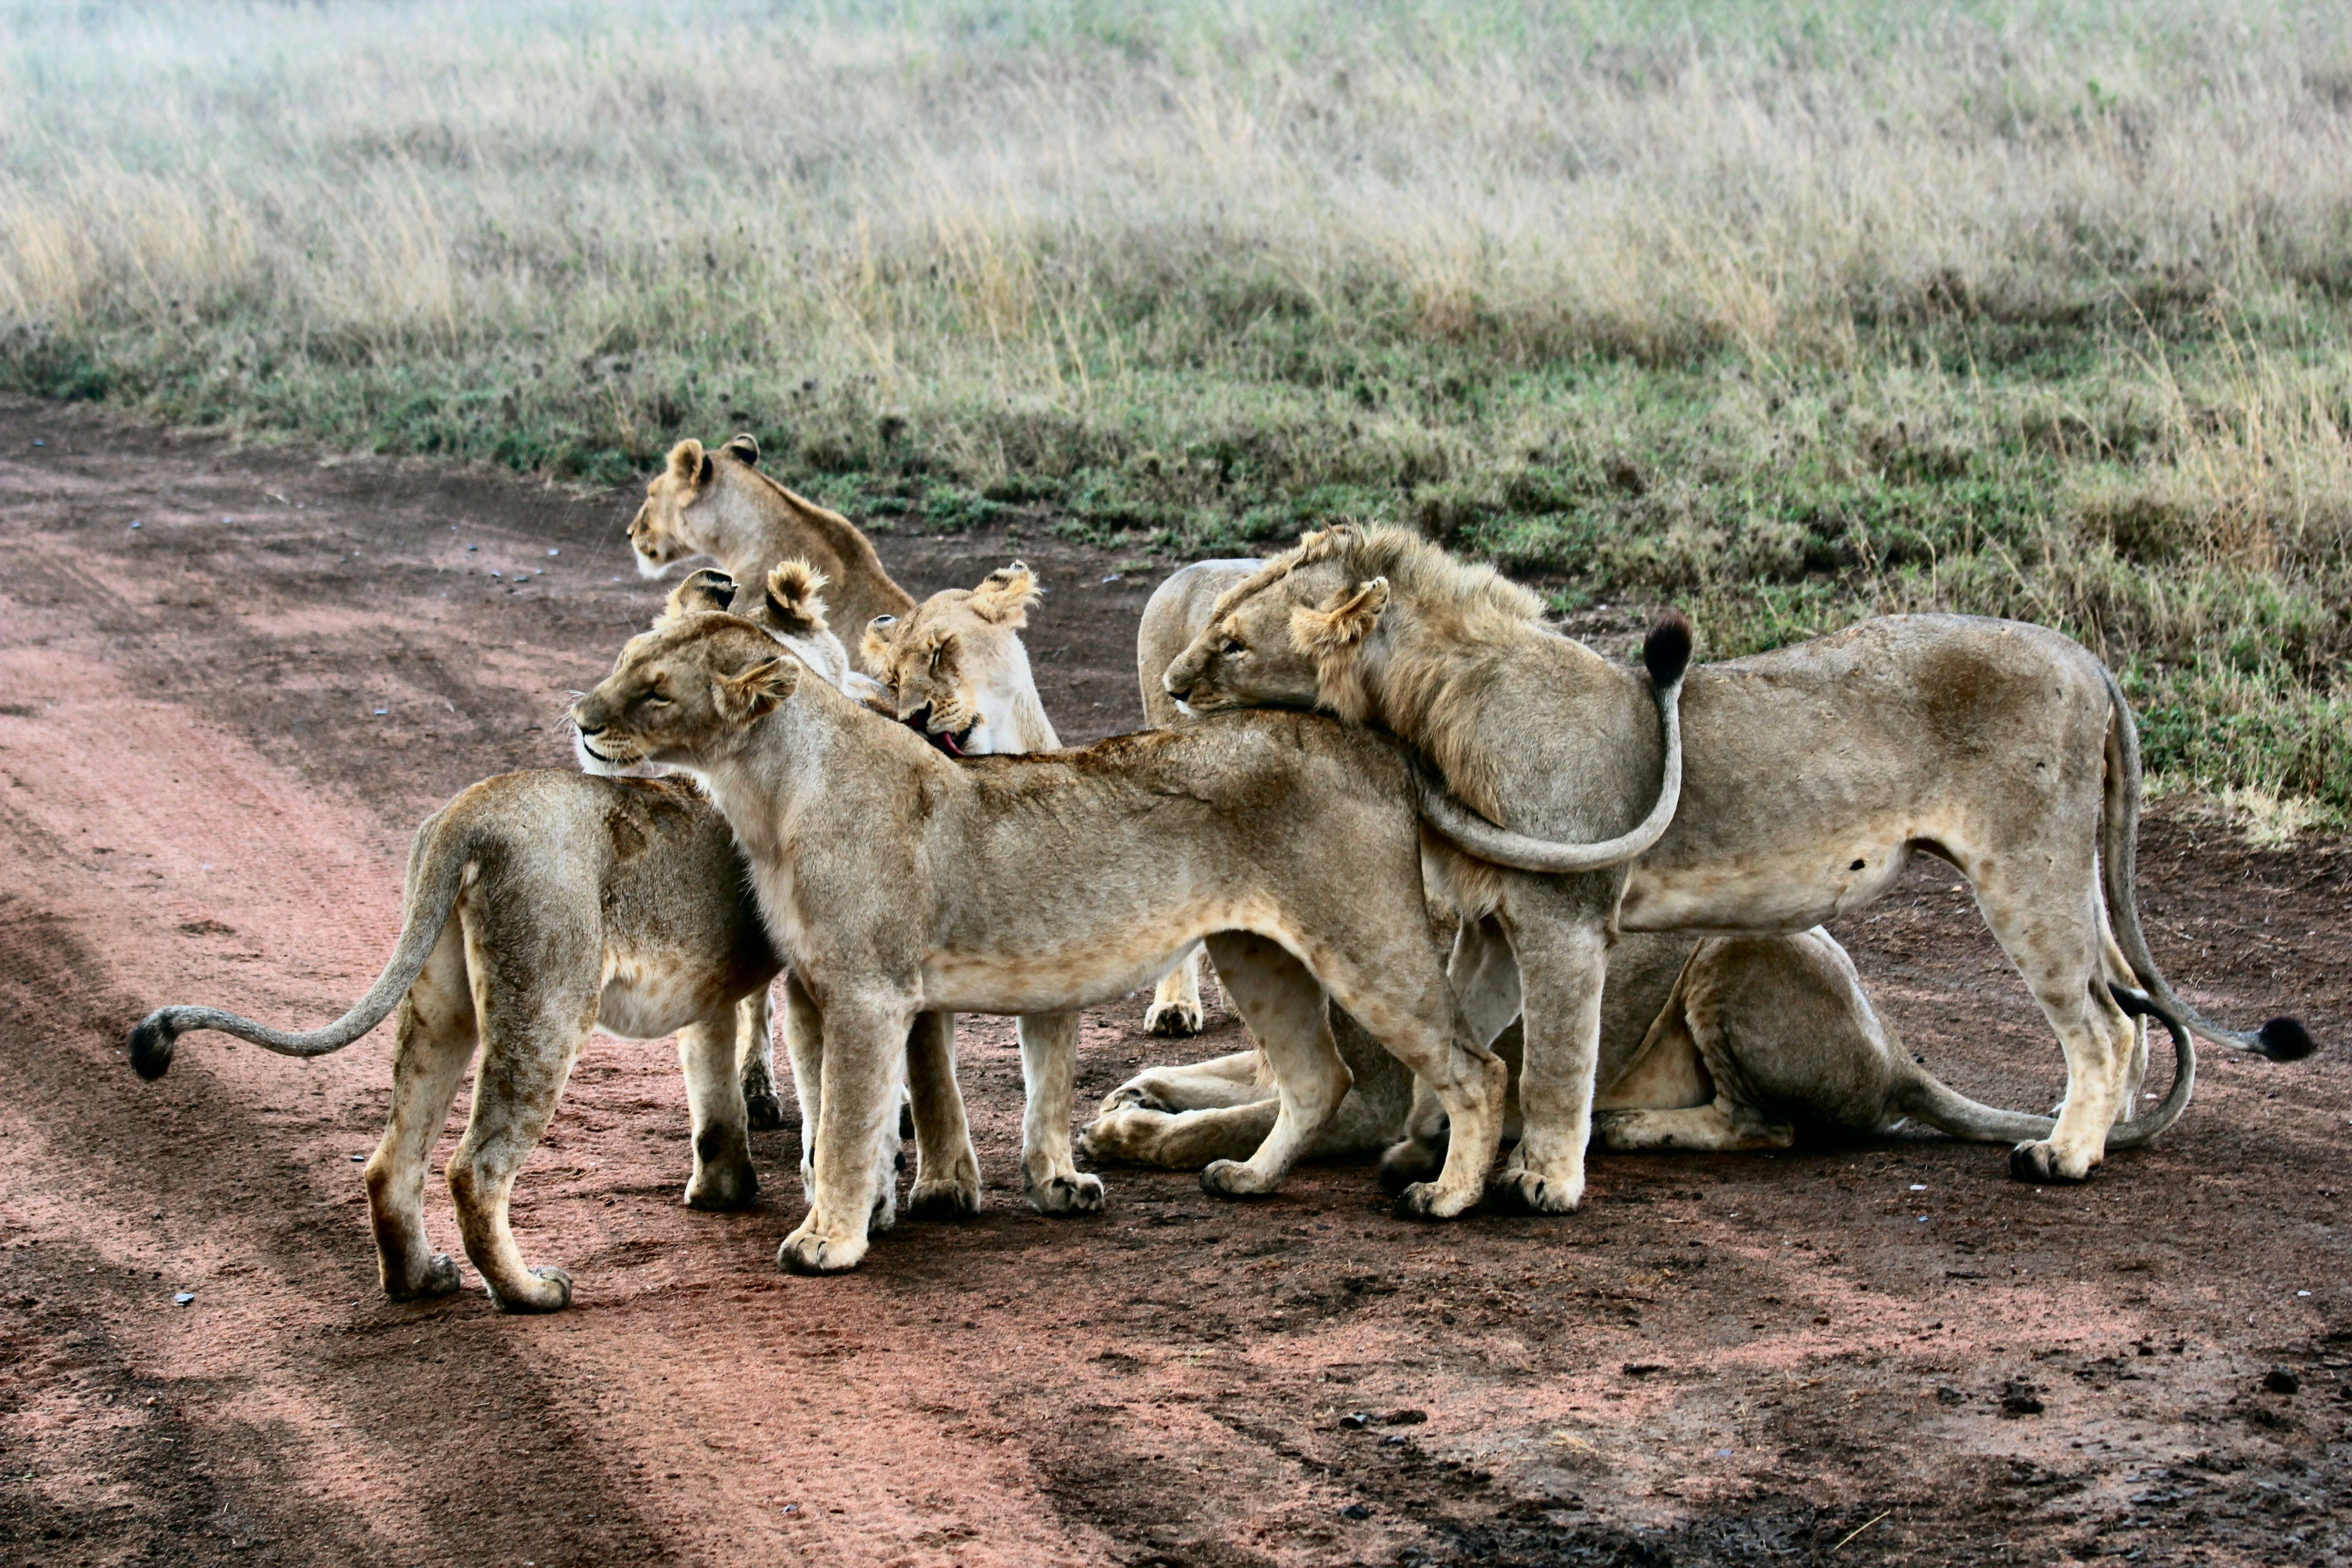 A pride of lions standing close to each other in a savannah